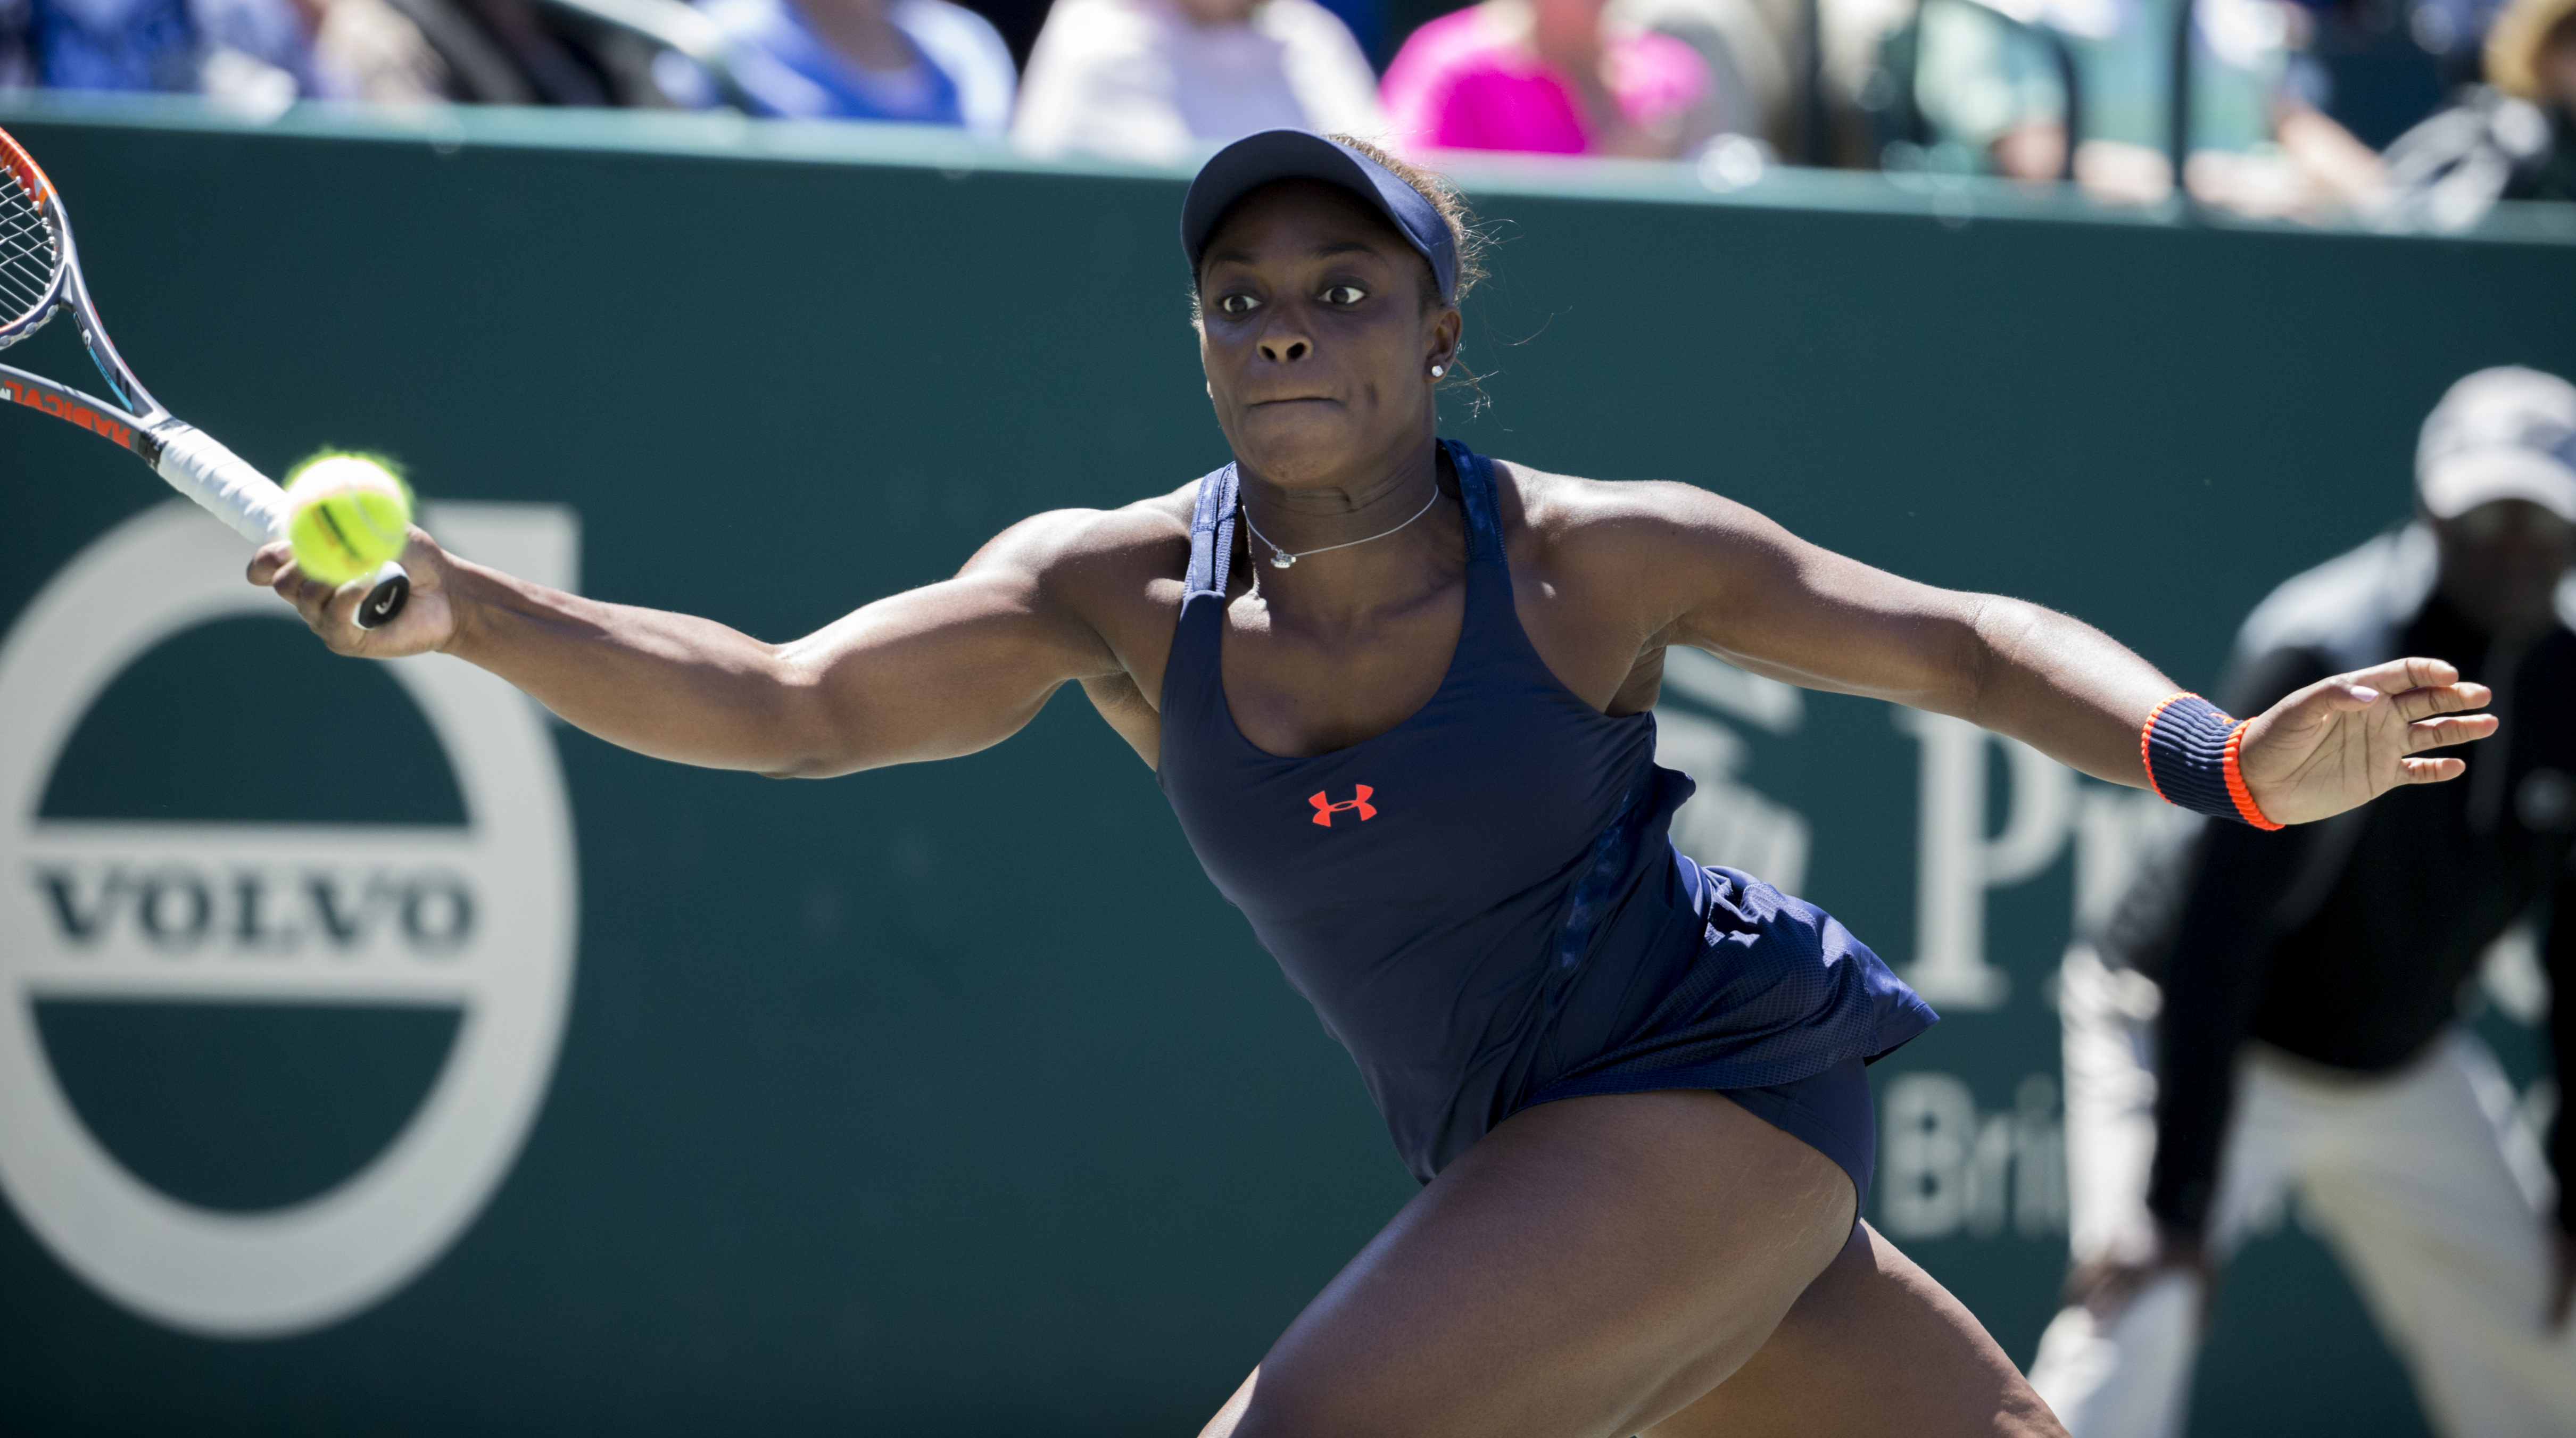 Sloane Stephens hits the ball against Angelique Kerber of Germany, during their semifinal tennis match at the Volvo Car Open in Charleston, S.C., Saturday, April 9, 2016. Kerber retired in the second set. (AP Photo/Stephen B. Morton)